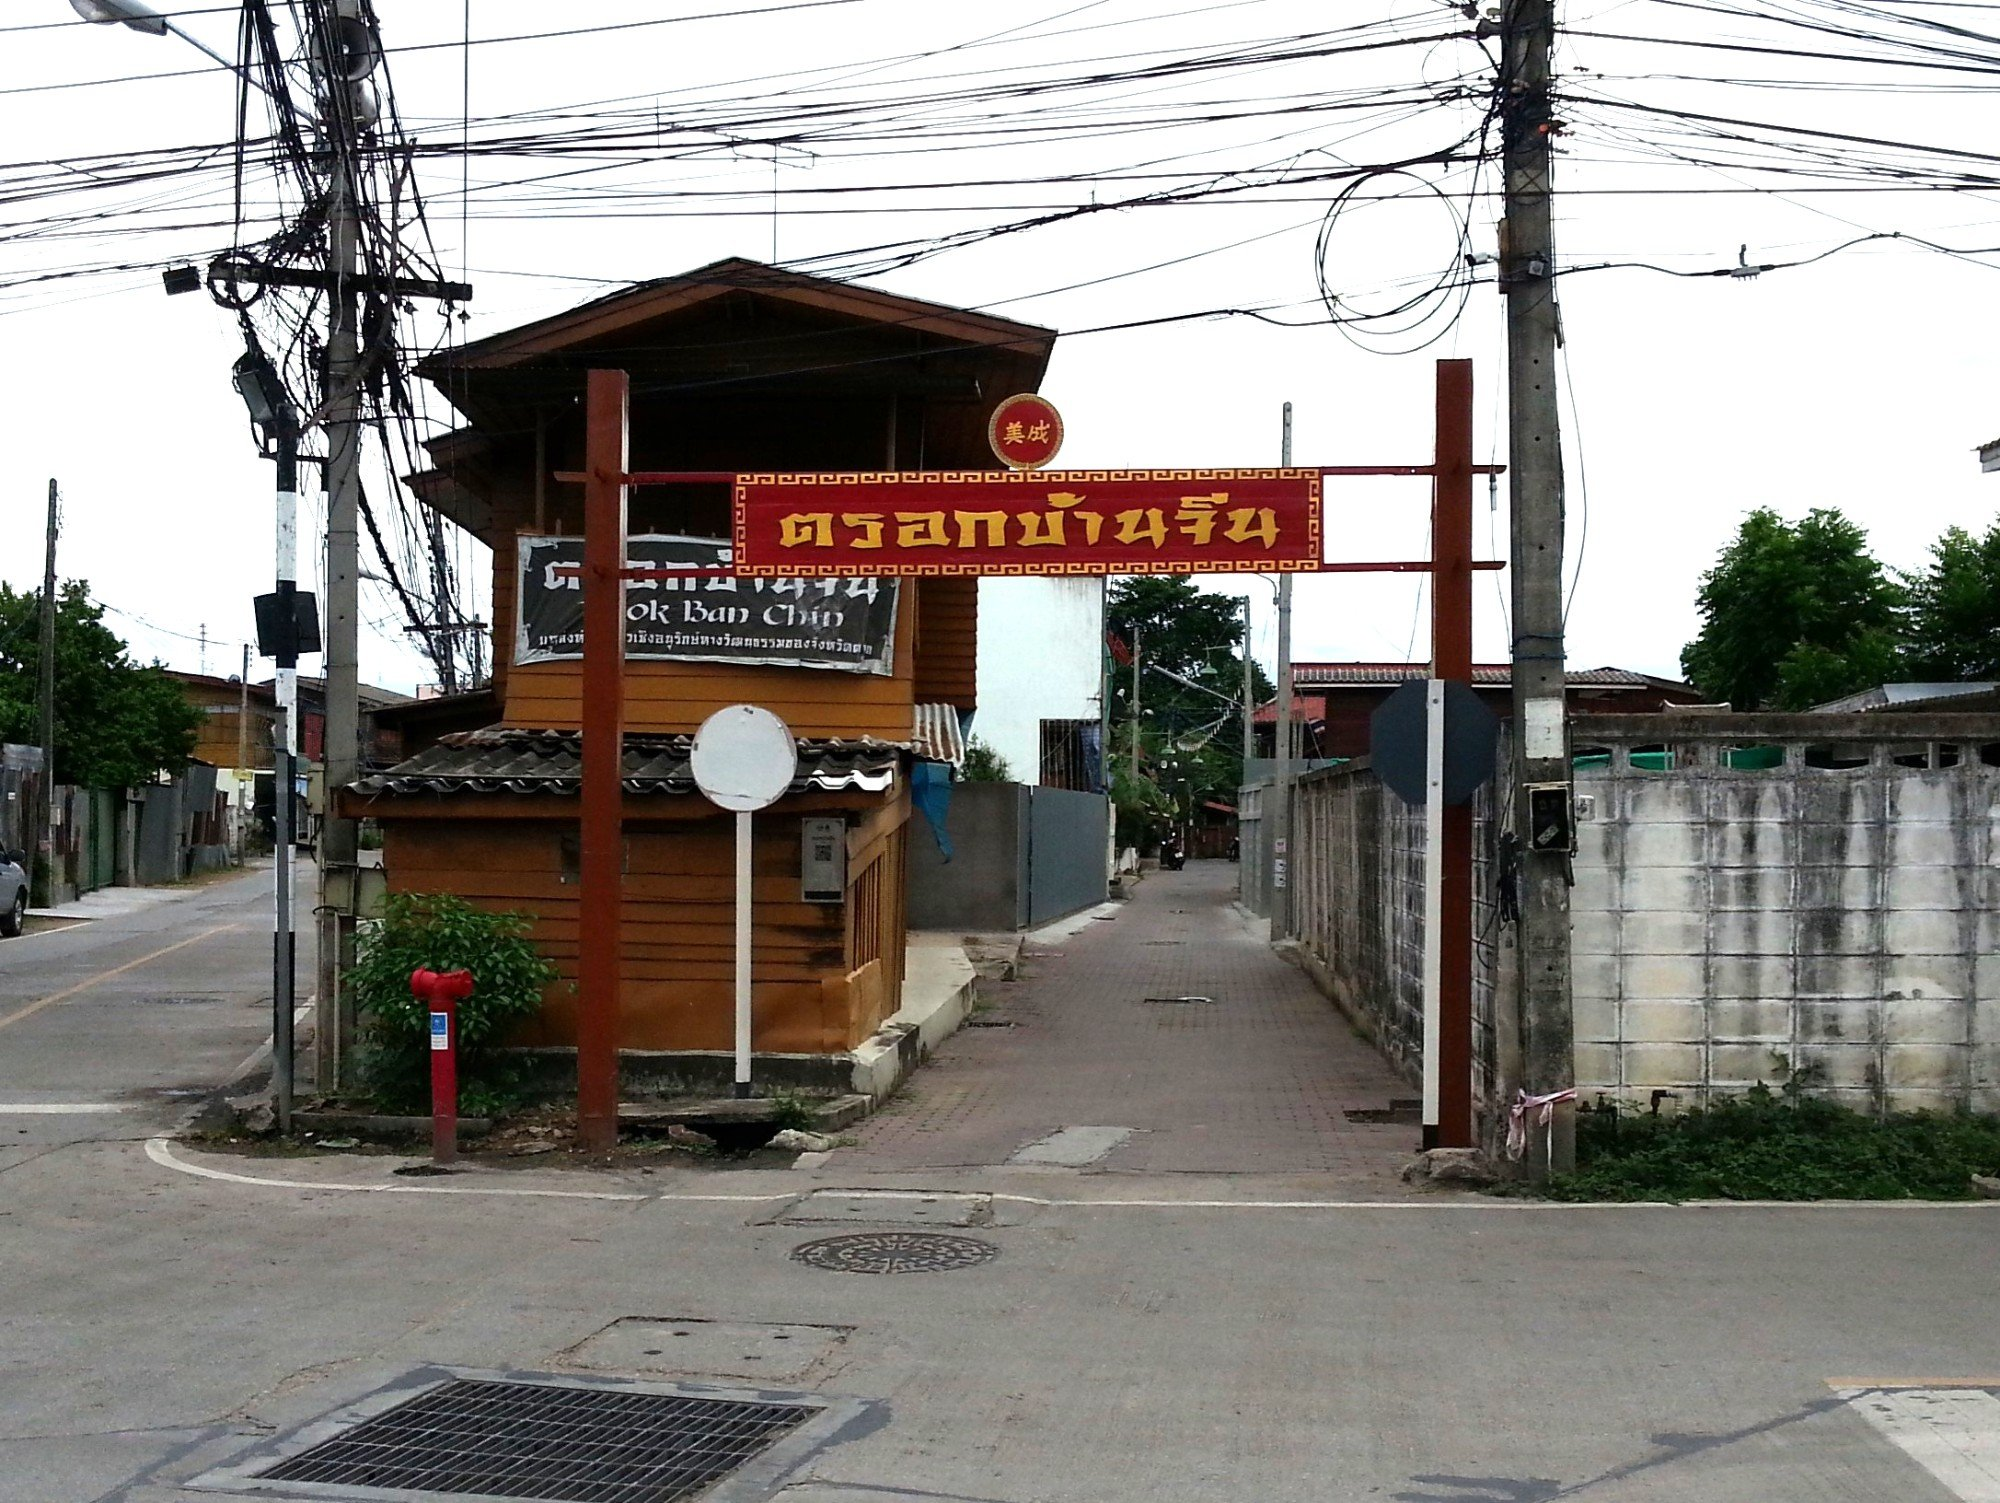 Entrance to Ban Chin Alley